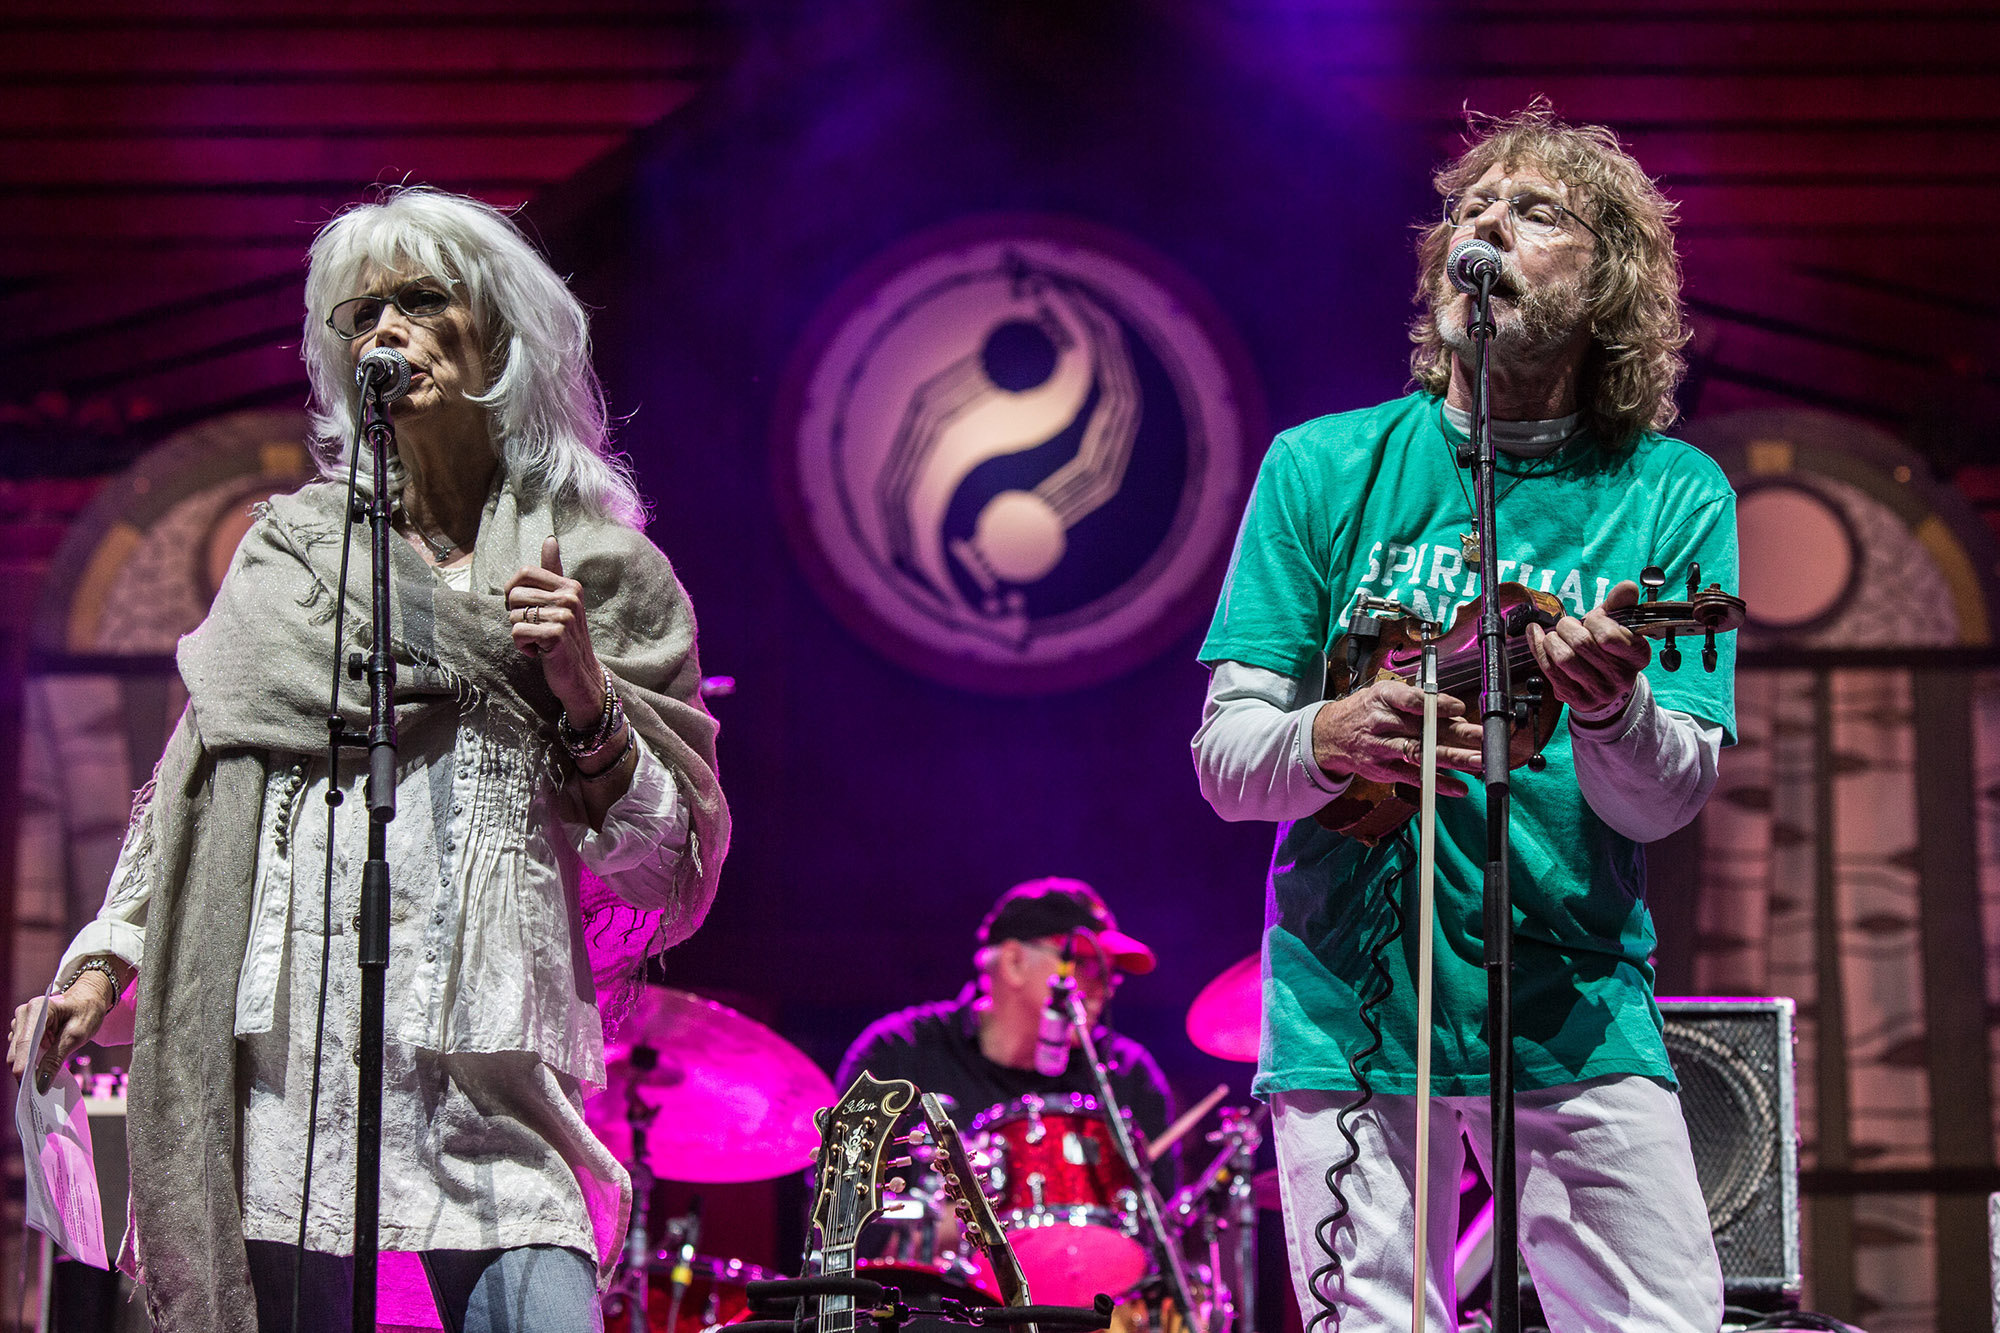 Telluride Bluegrass Festival: 7 Best Things We Saw – Rolling Stone